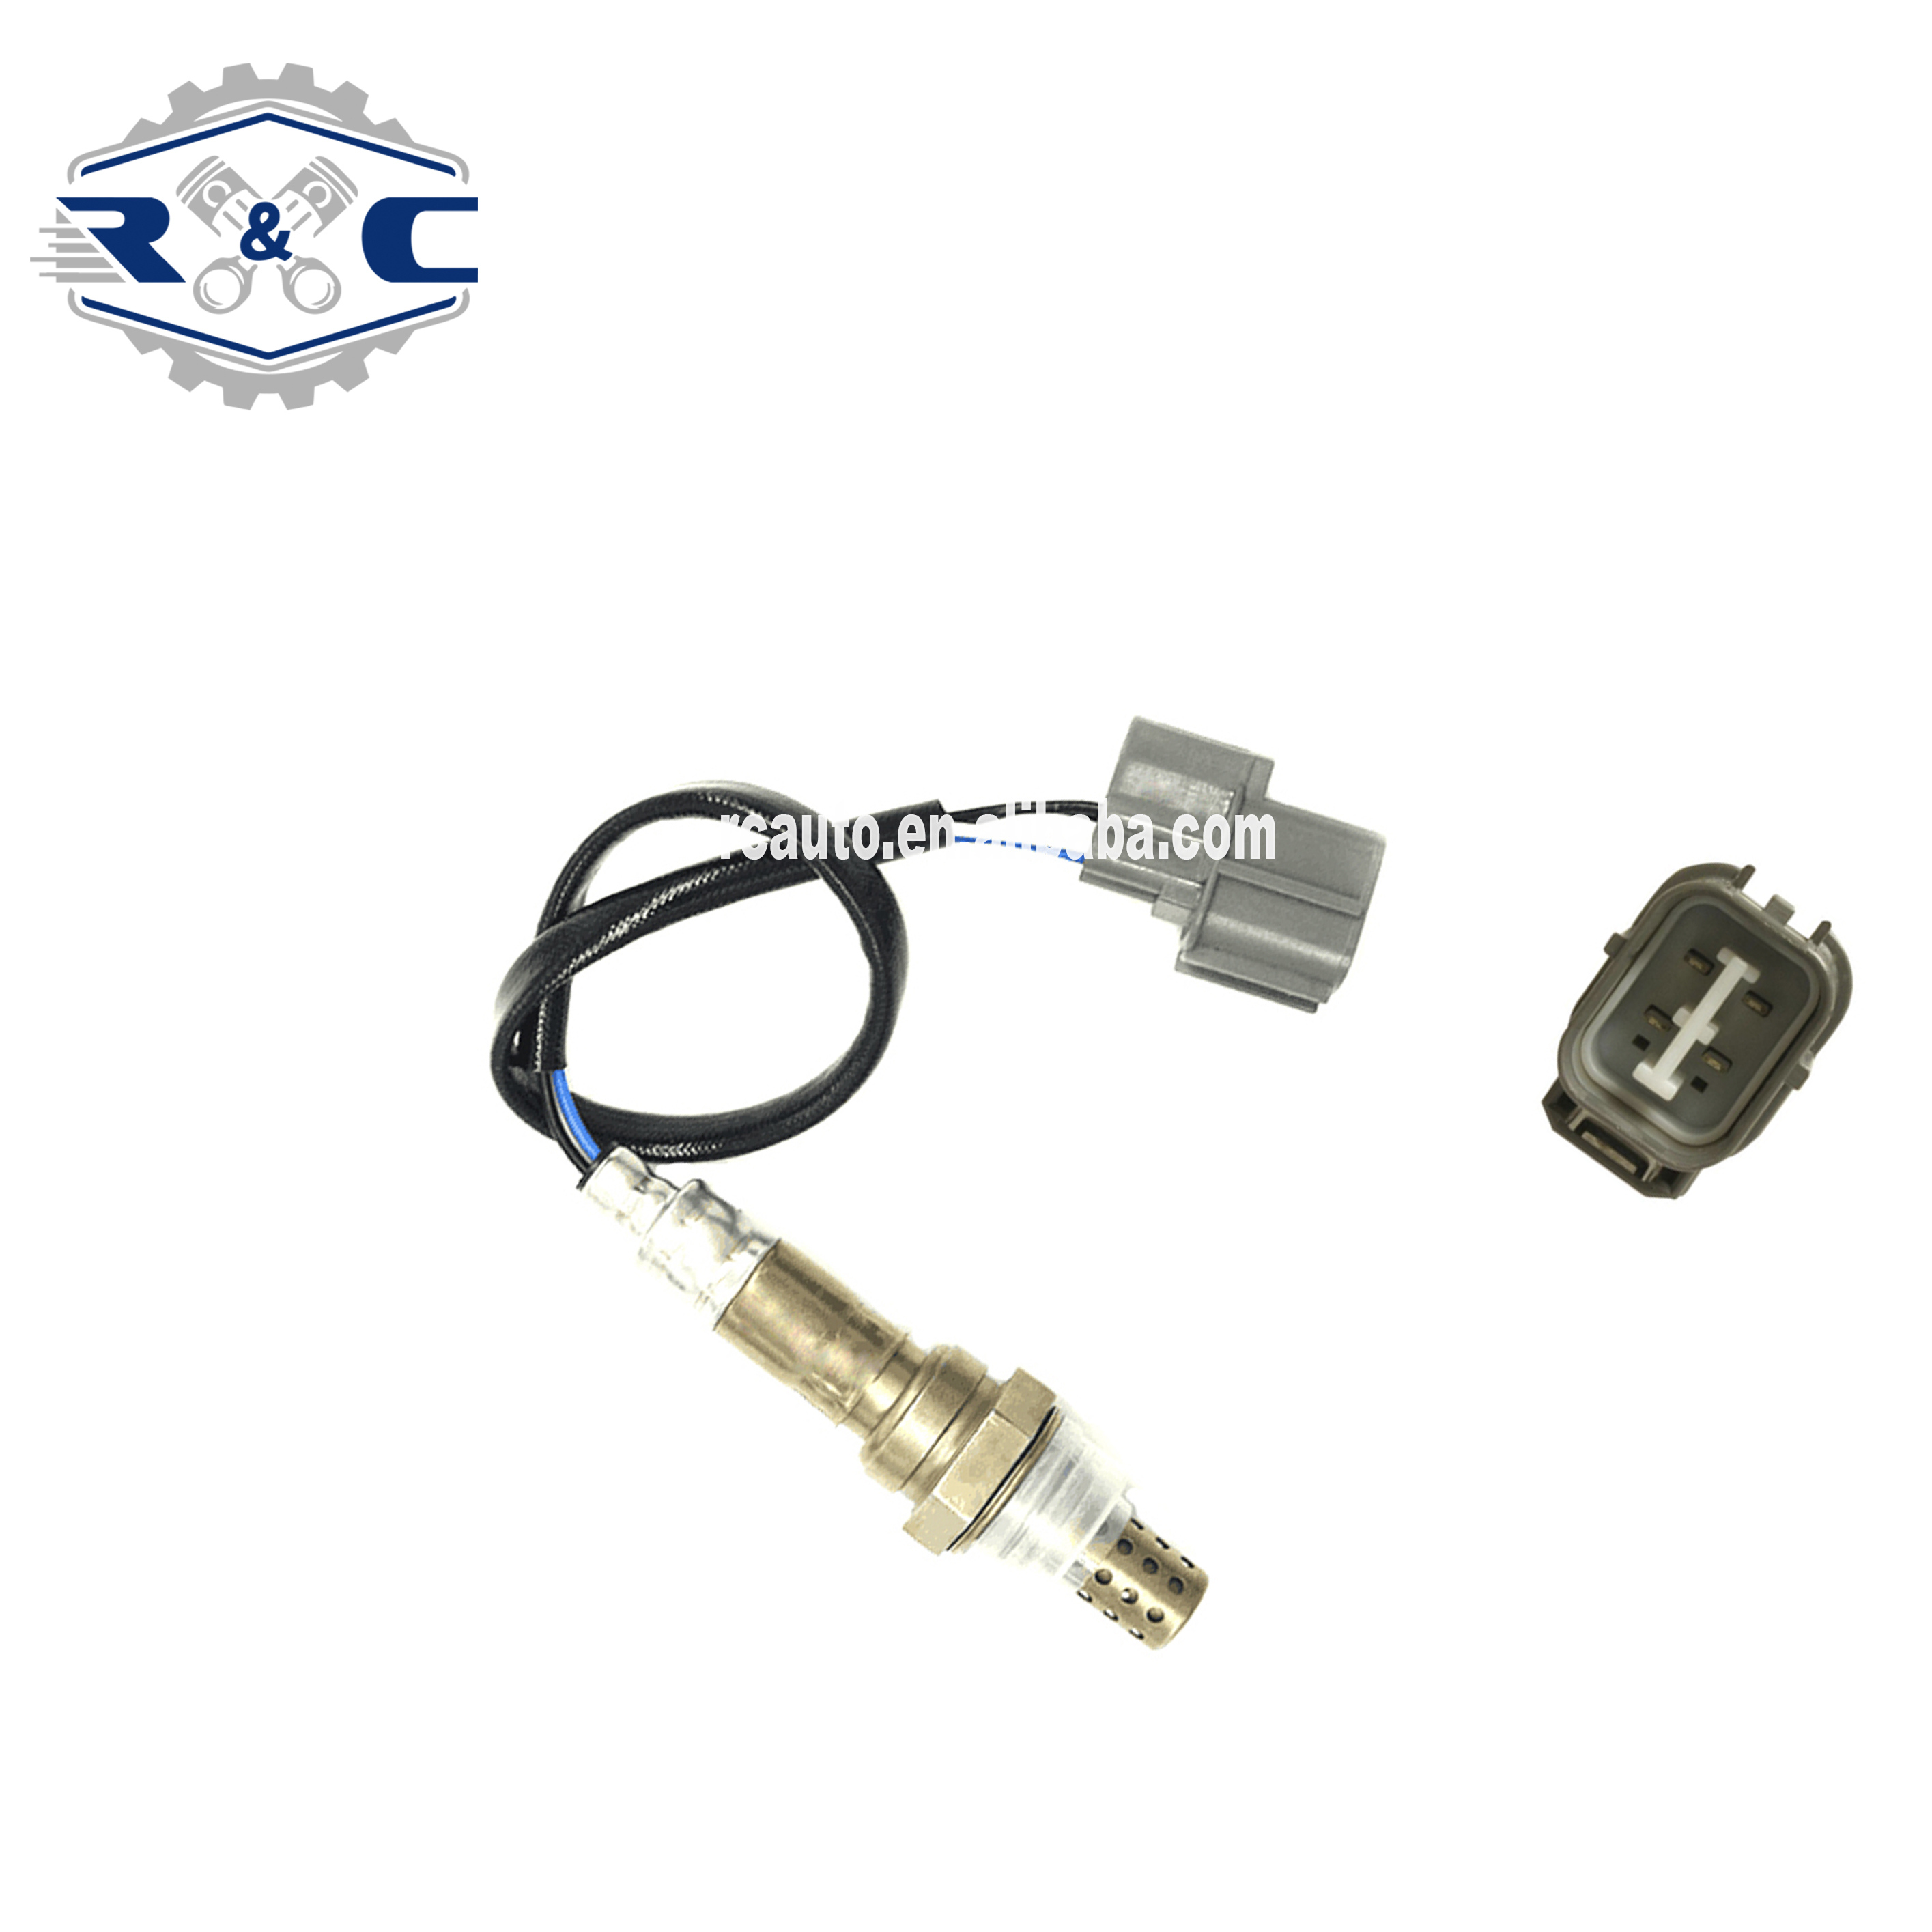 R&amp;C High Quality Sonda Lambda 36531-P3F-<strong>A01</strong> 234-4011 234-4065 For Honda <strong>Acura</strong>/Civic 2.0 1.6 /Isuzu Oxygen Sensor